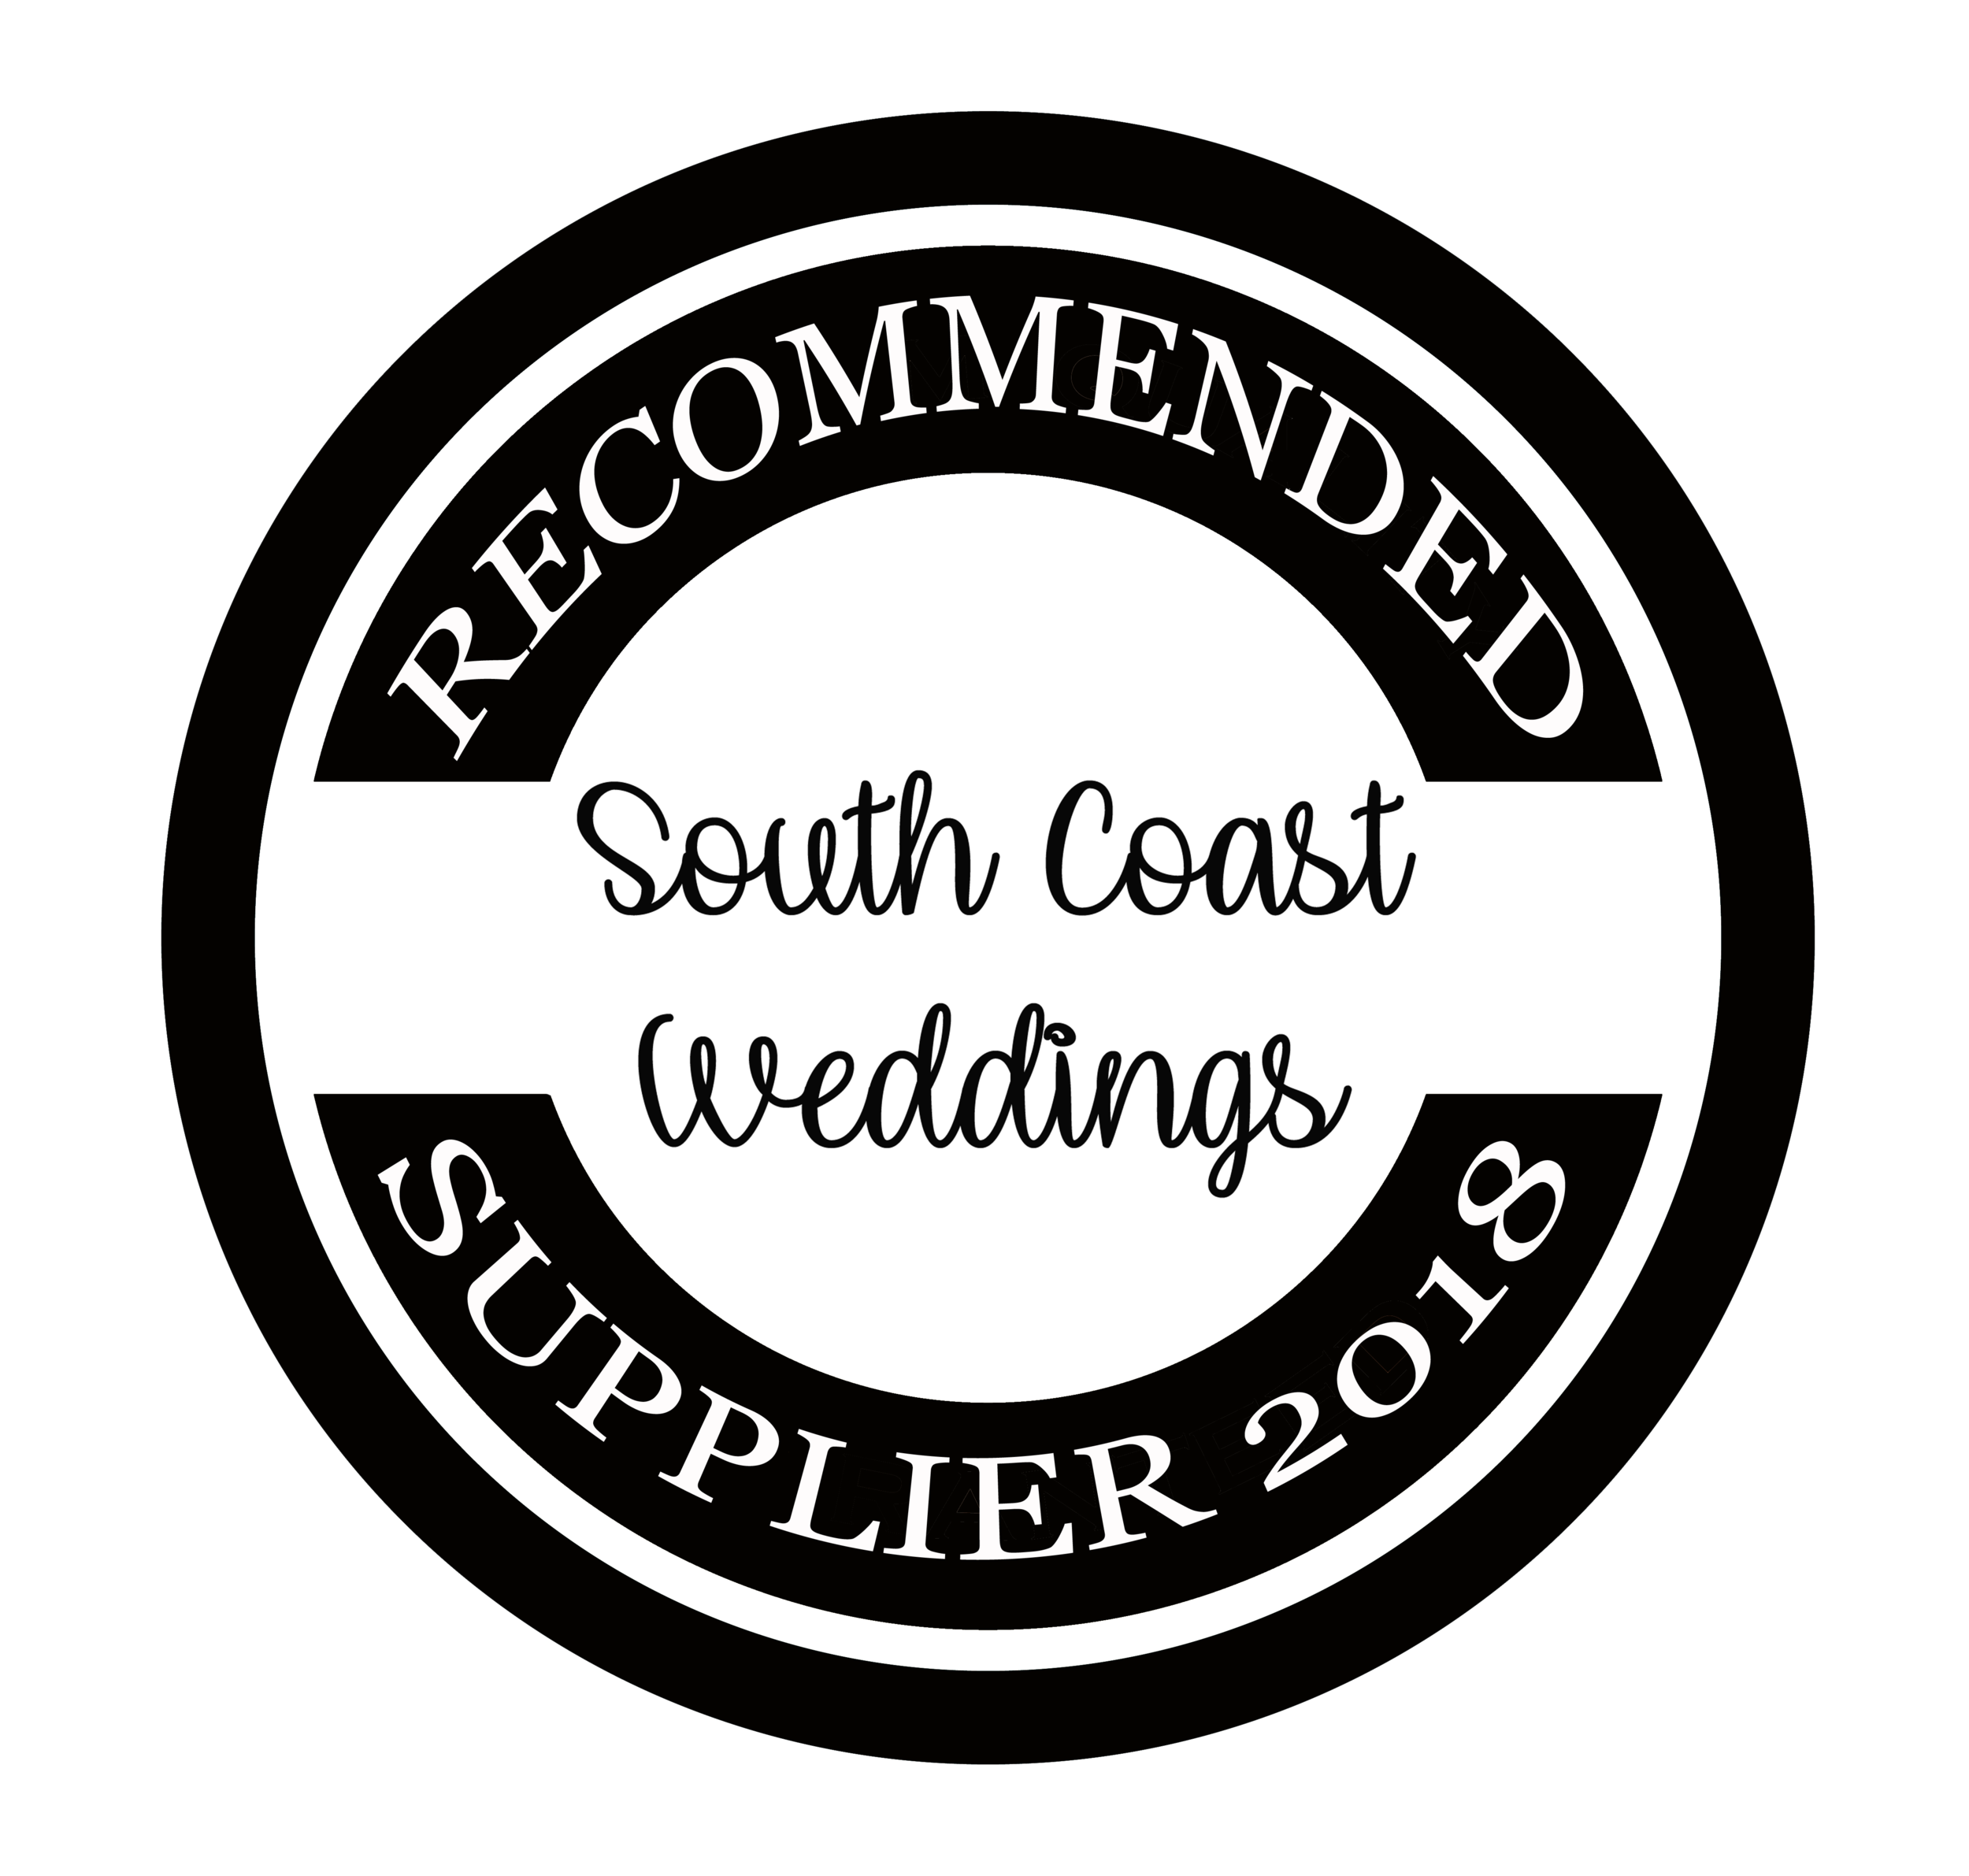 South Coast Weddings | Recommended Supplier